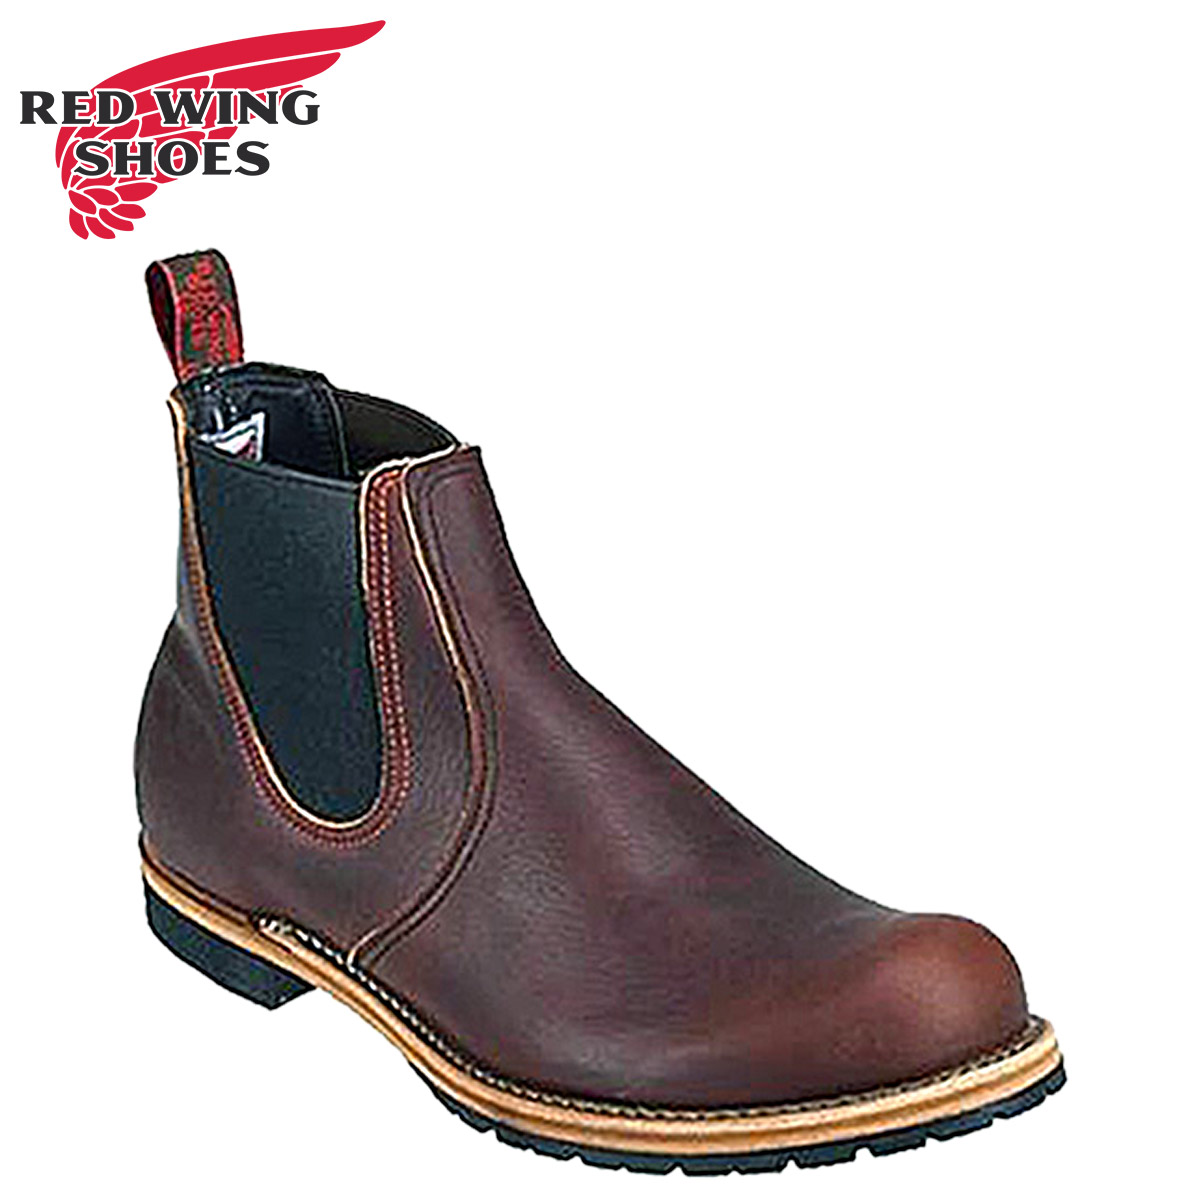 Red wing RED WING side Gore boots